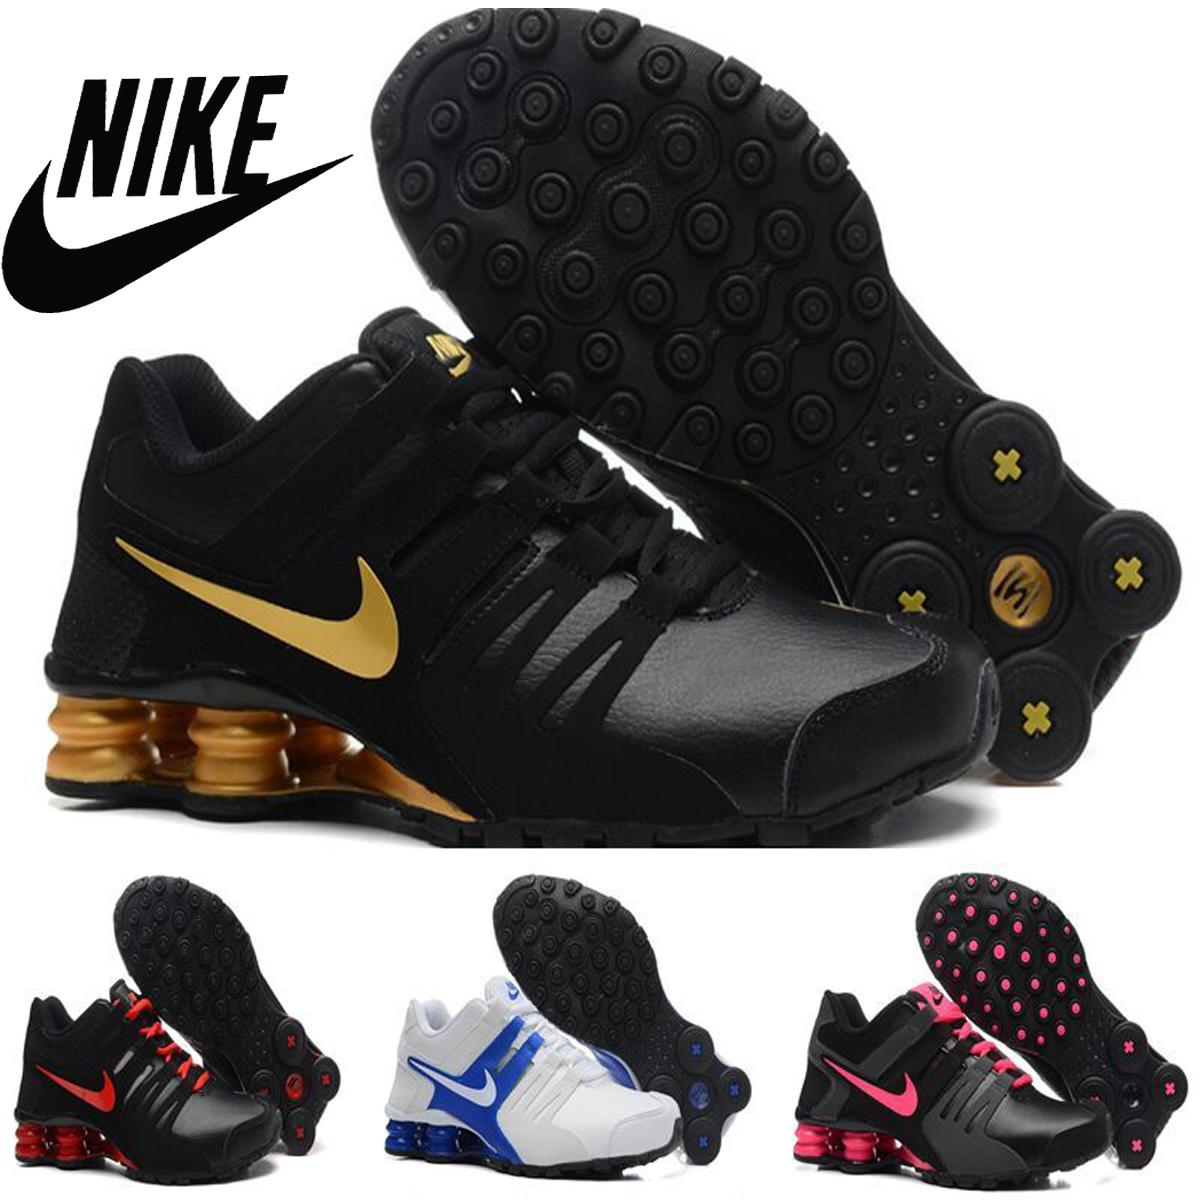 Cheap Nike Shox Shoes Uk